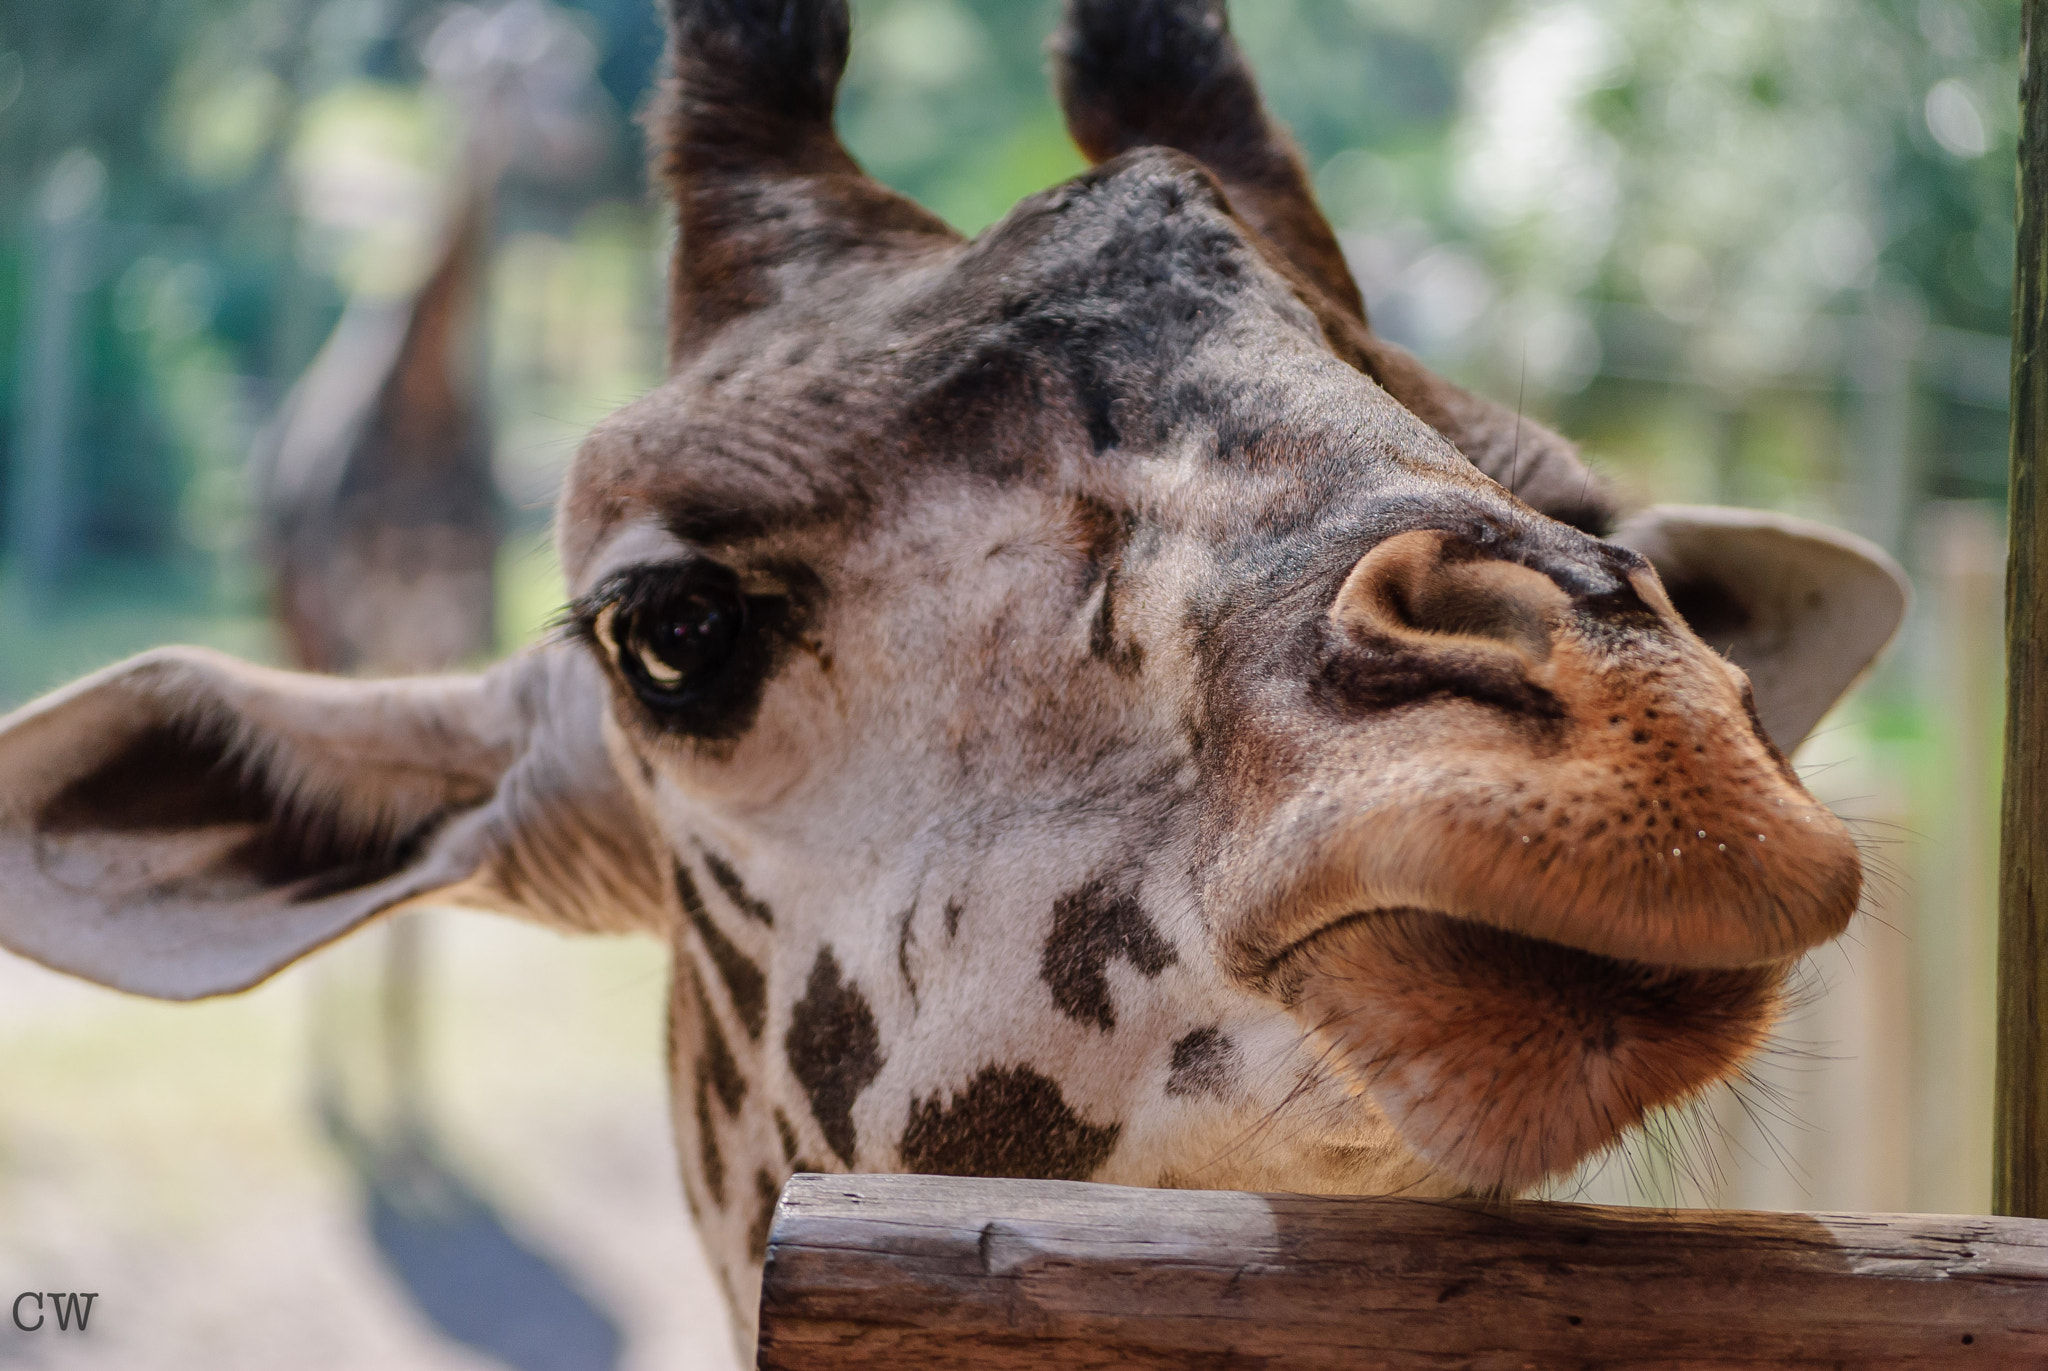 Photograph Giraffe by Cara Whittaker on 500px